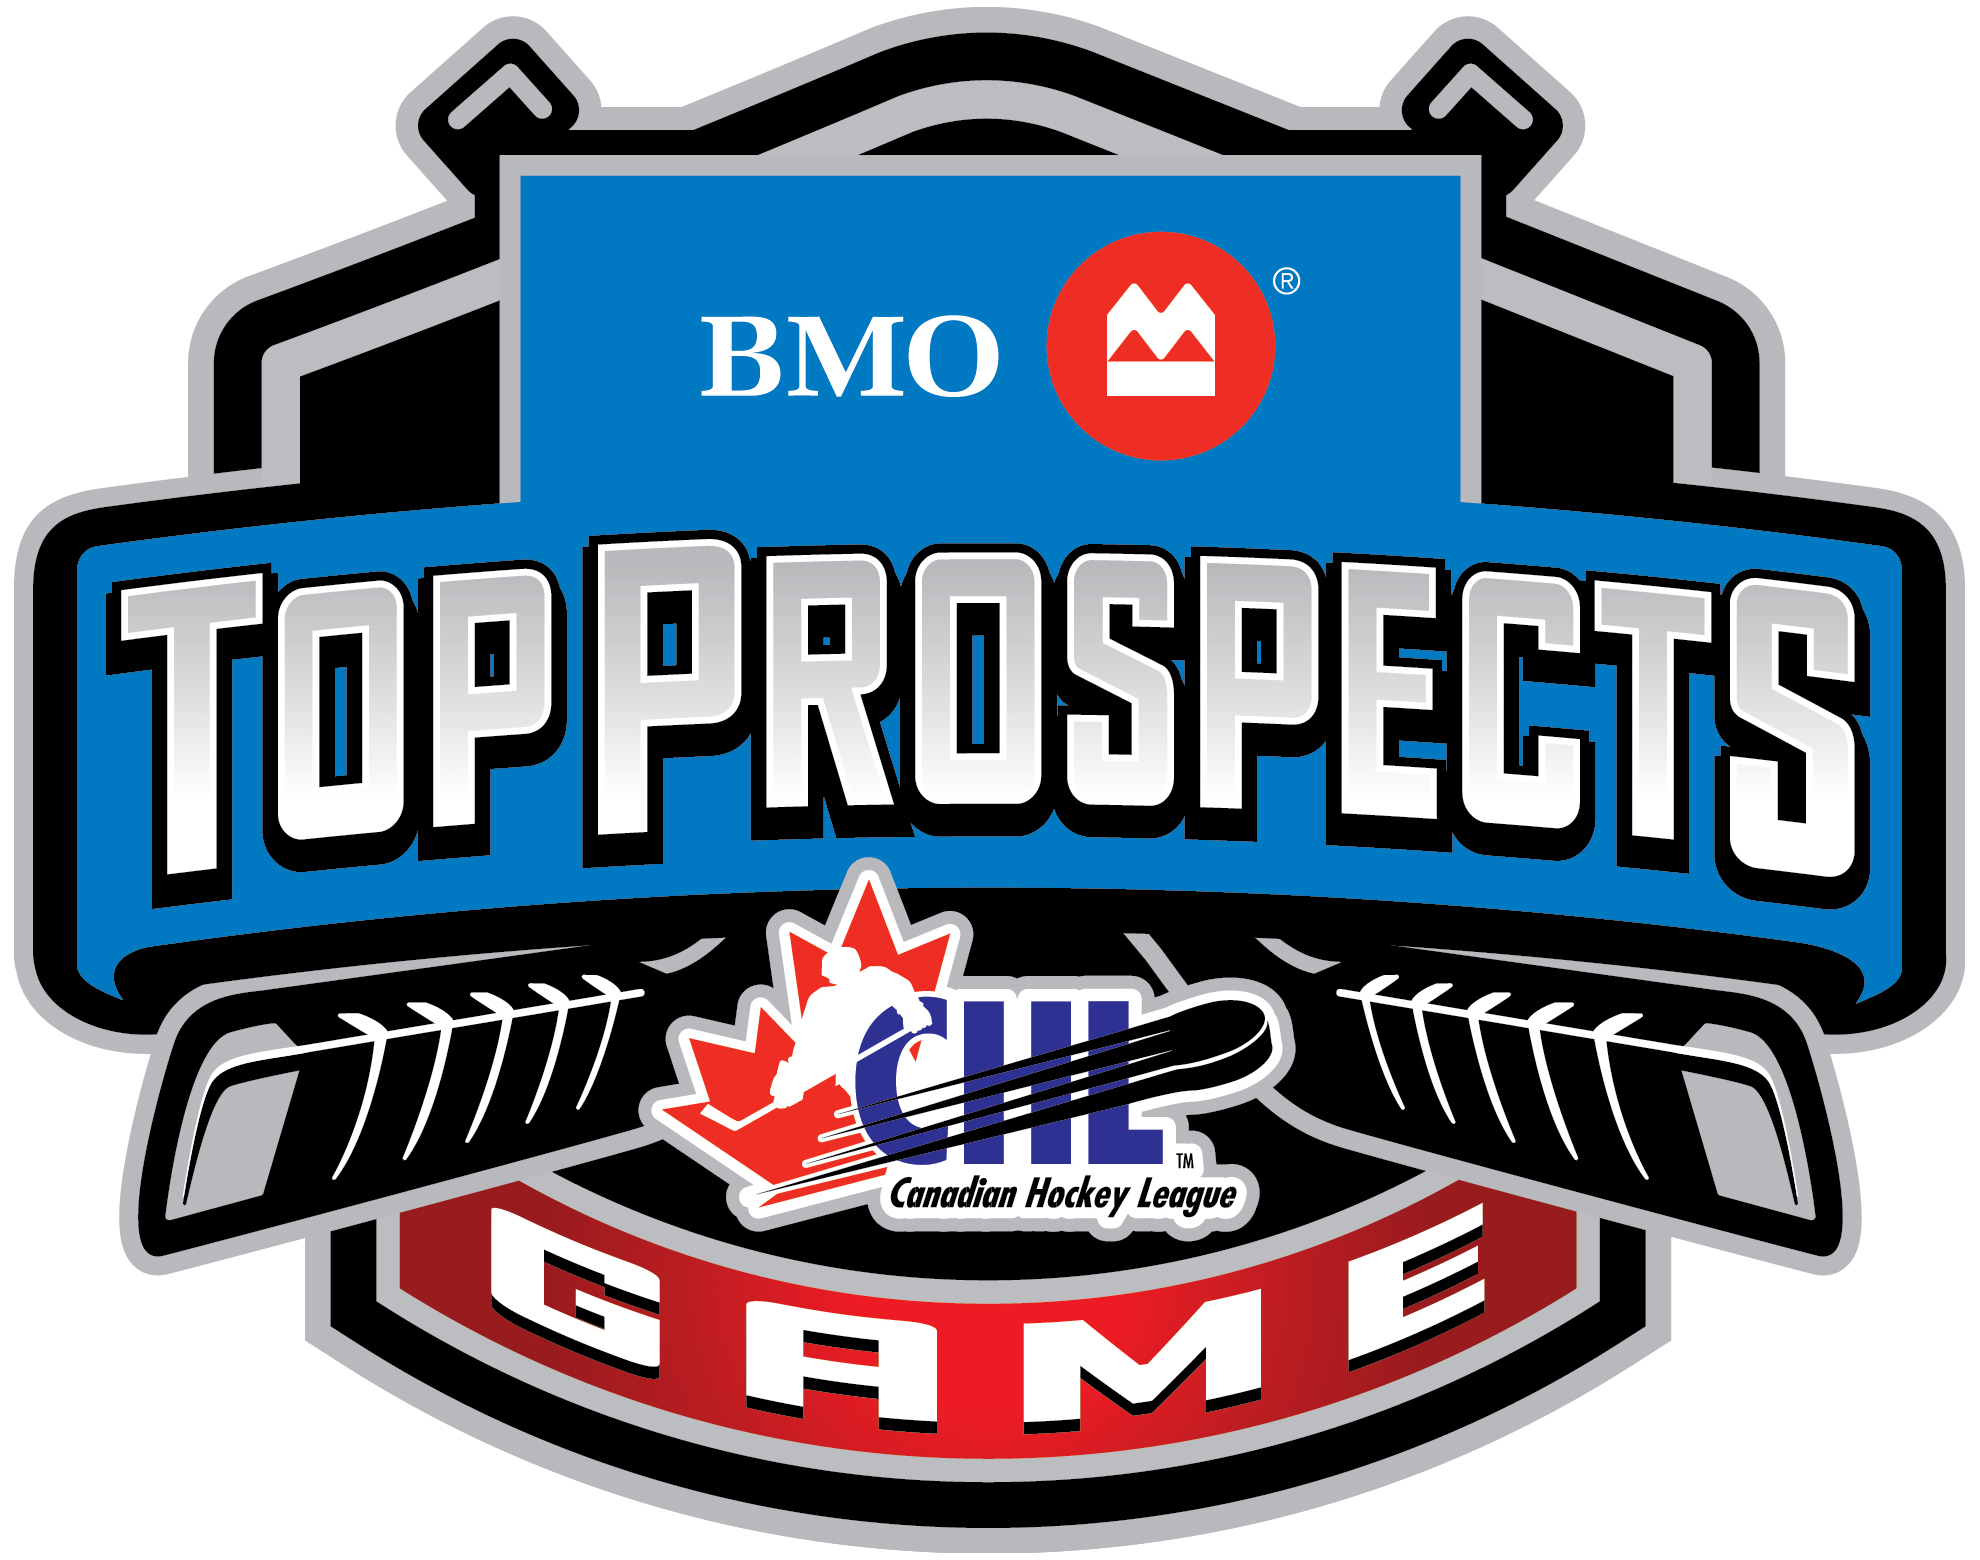 BMO CHL 2016 Top Prospects Game Logo (Photo courtesy of Canadian Hockey League)